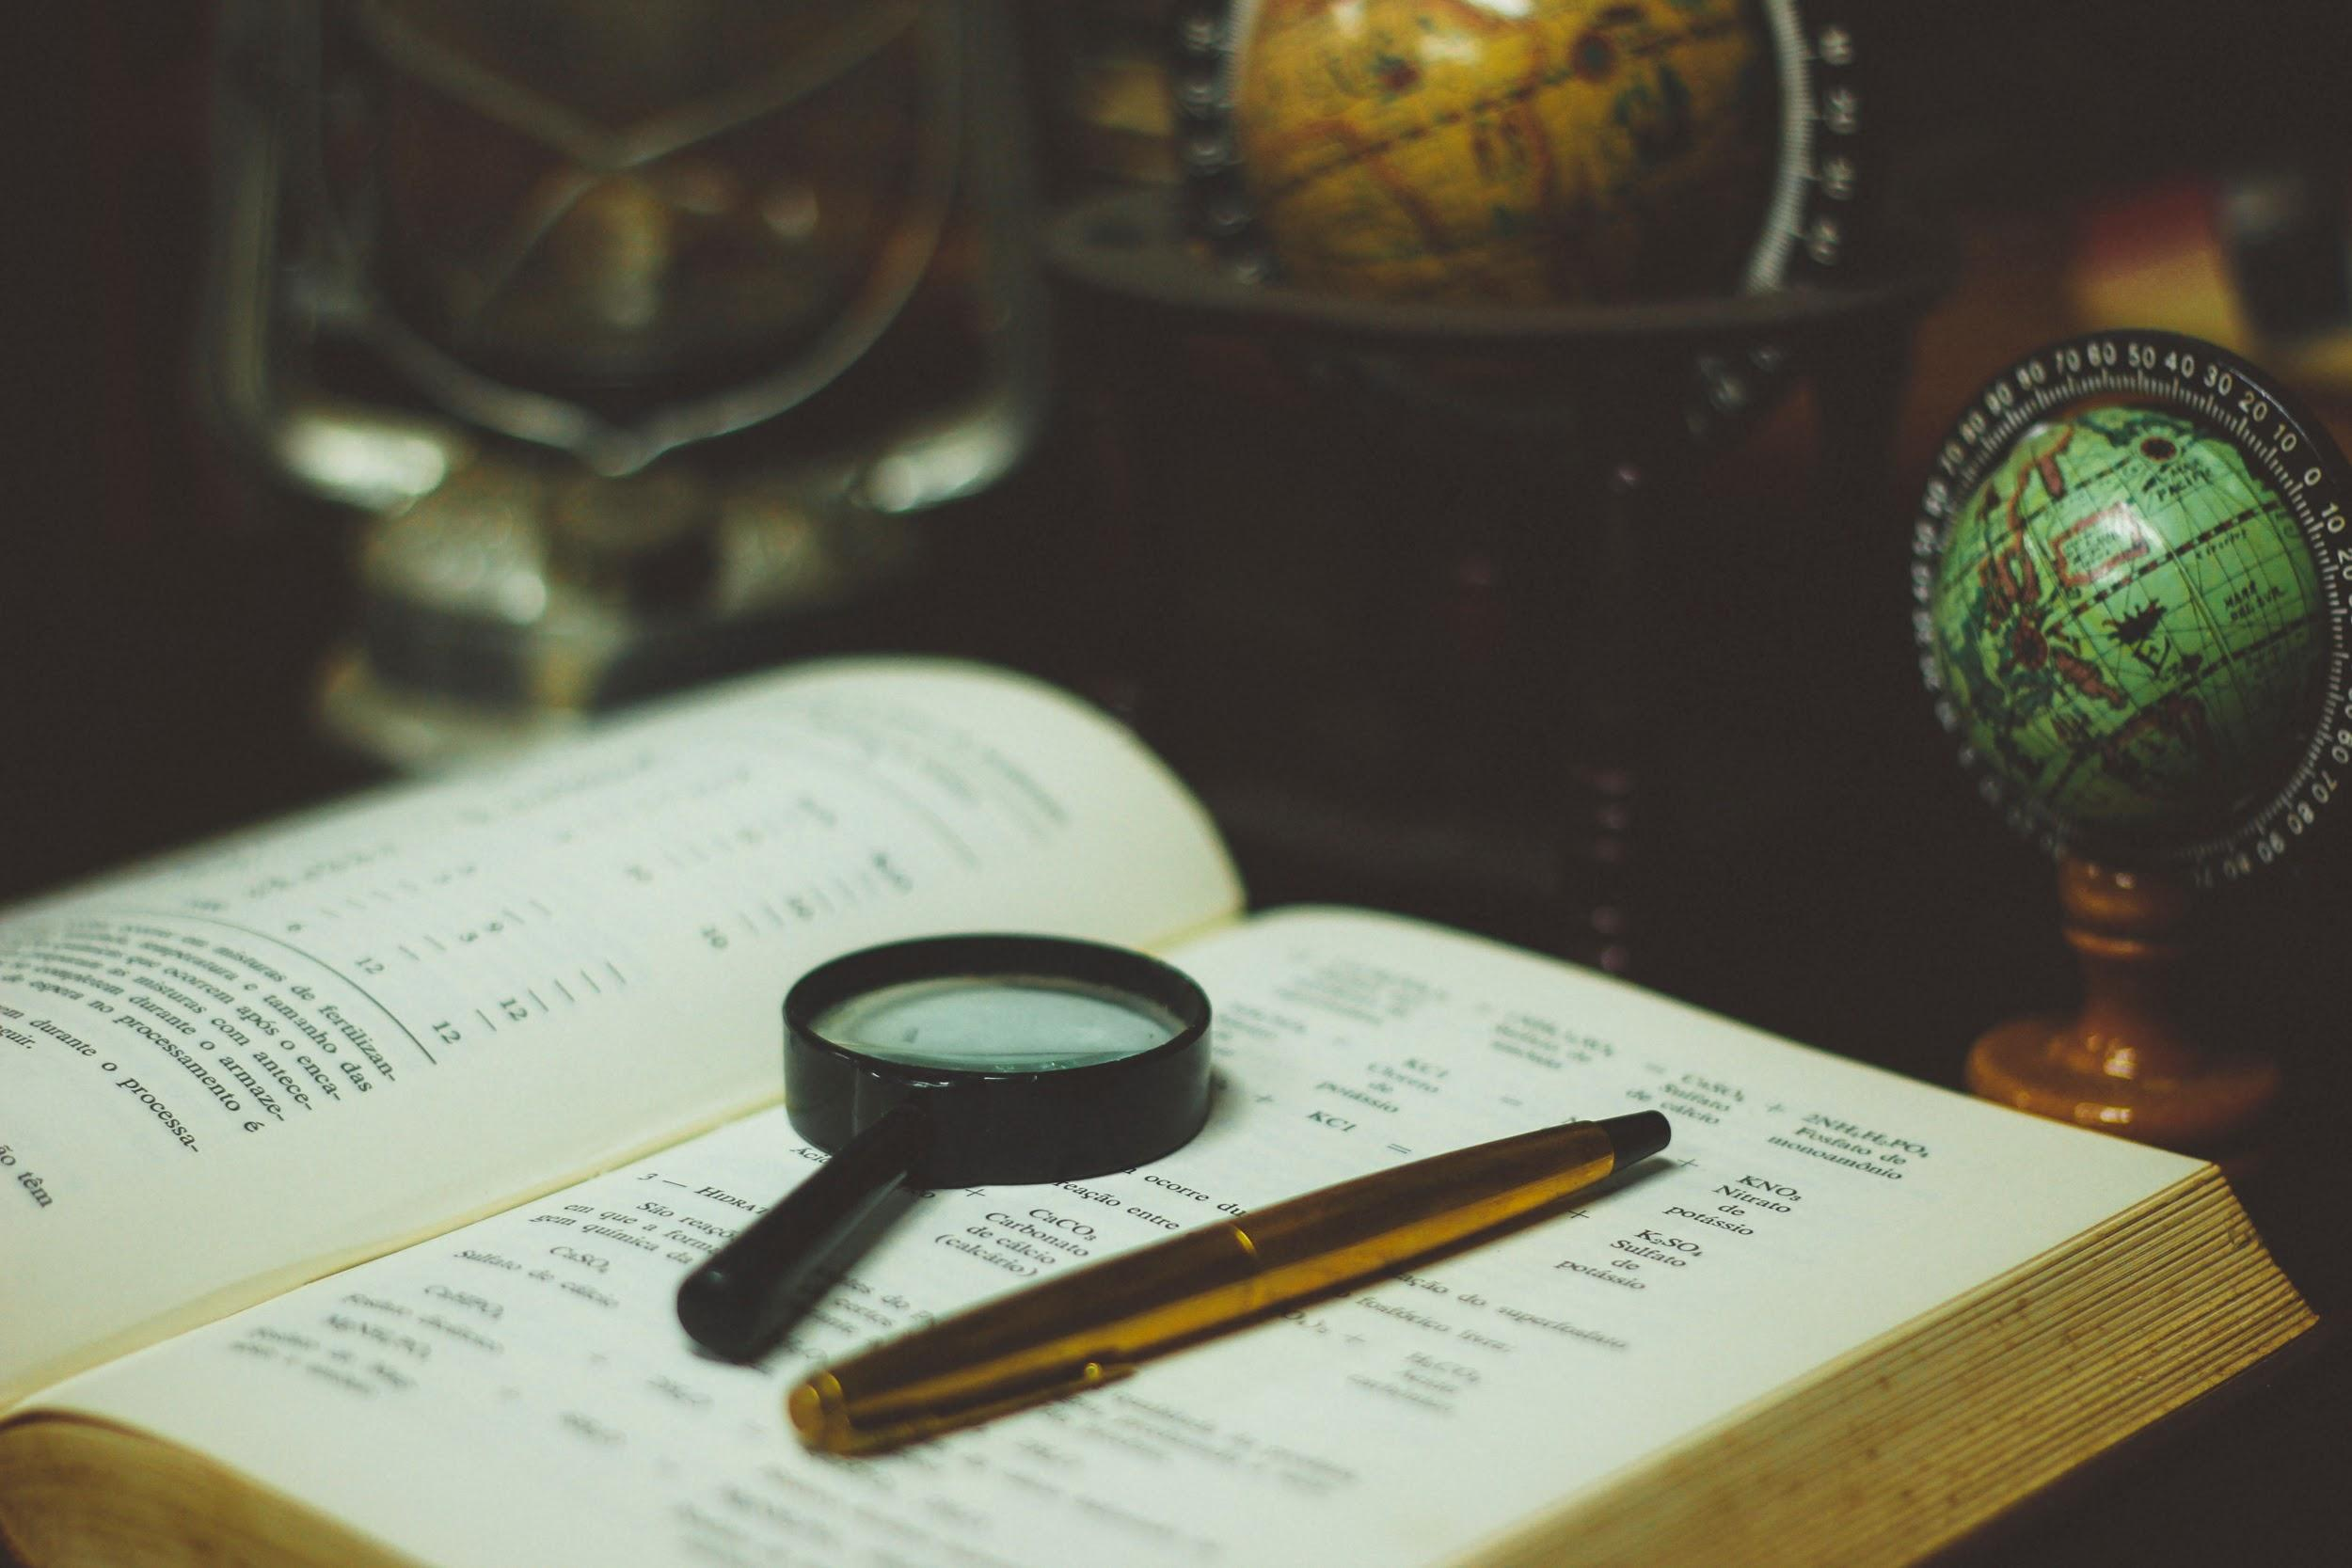 Globe, magnifying glass, and map book